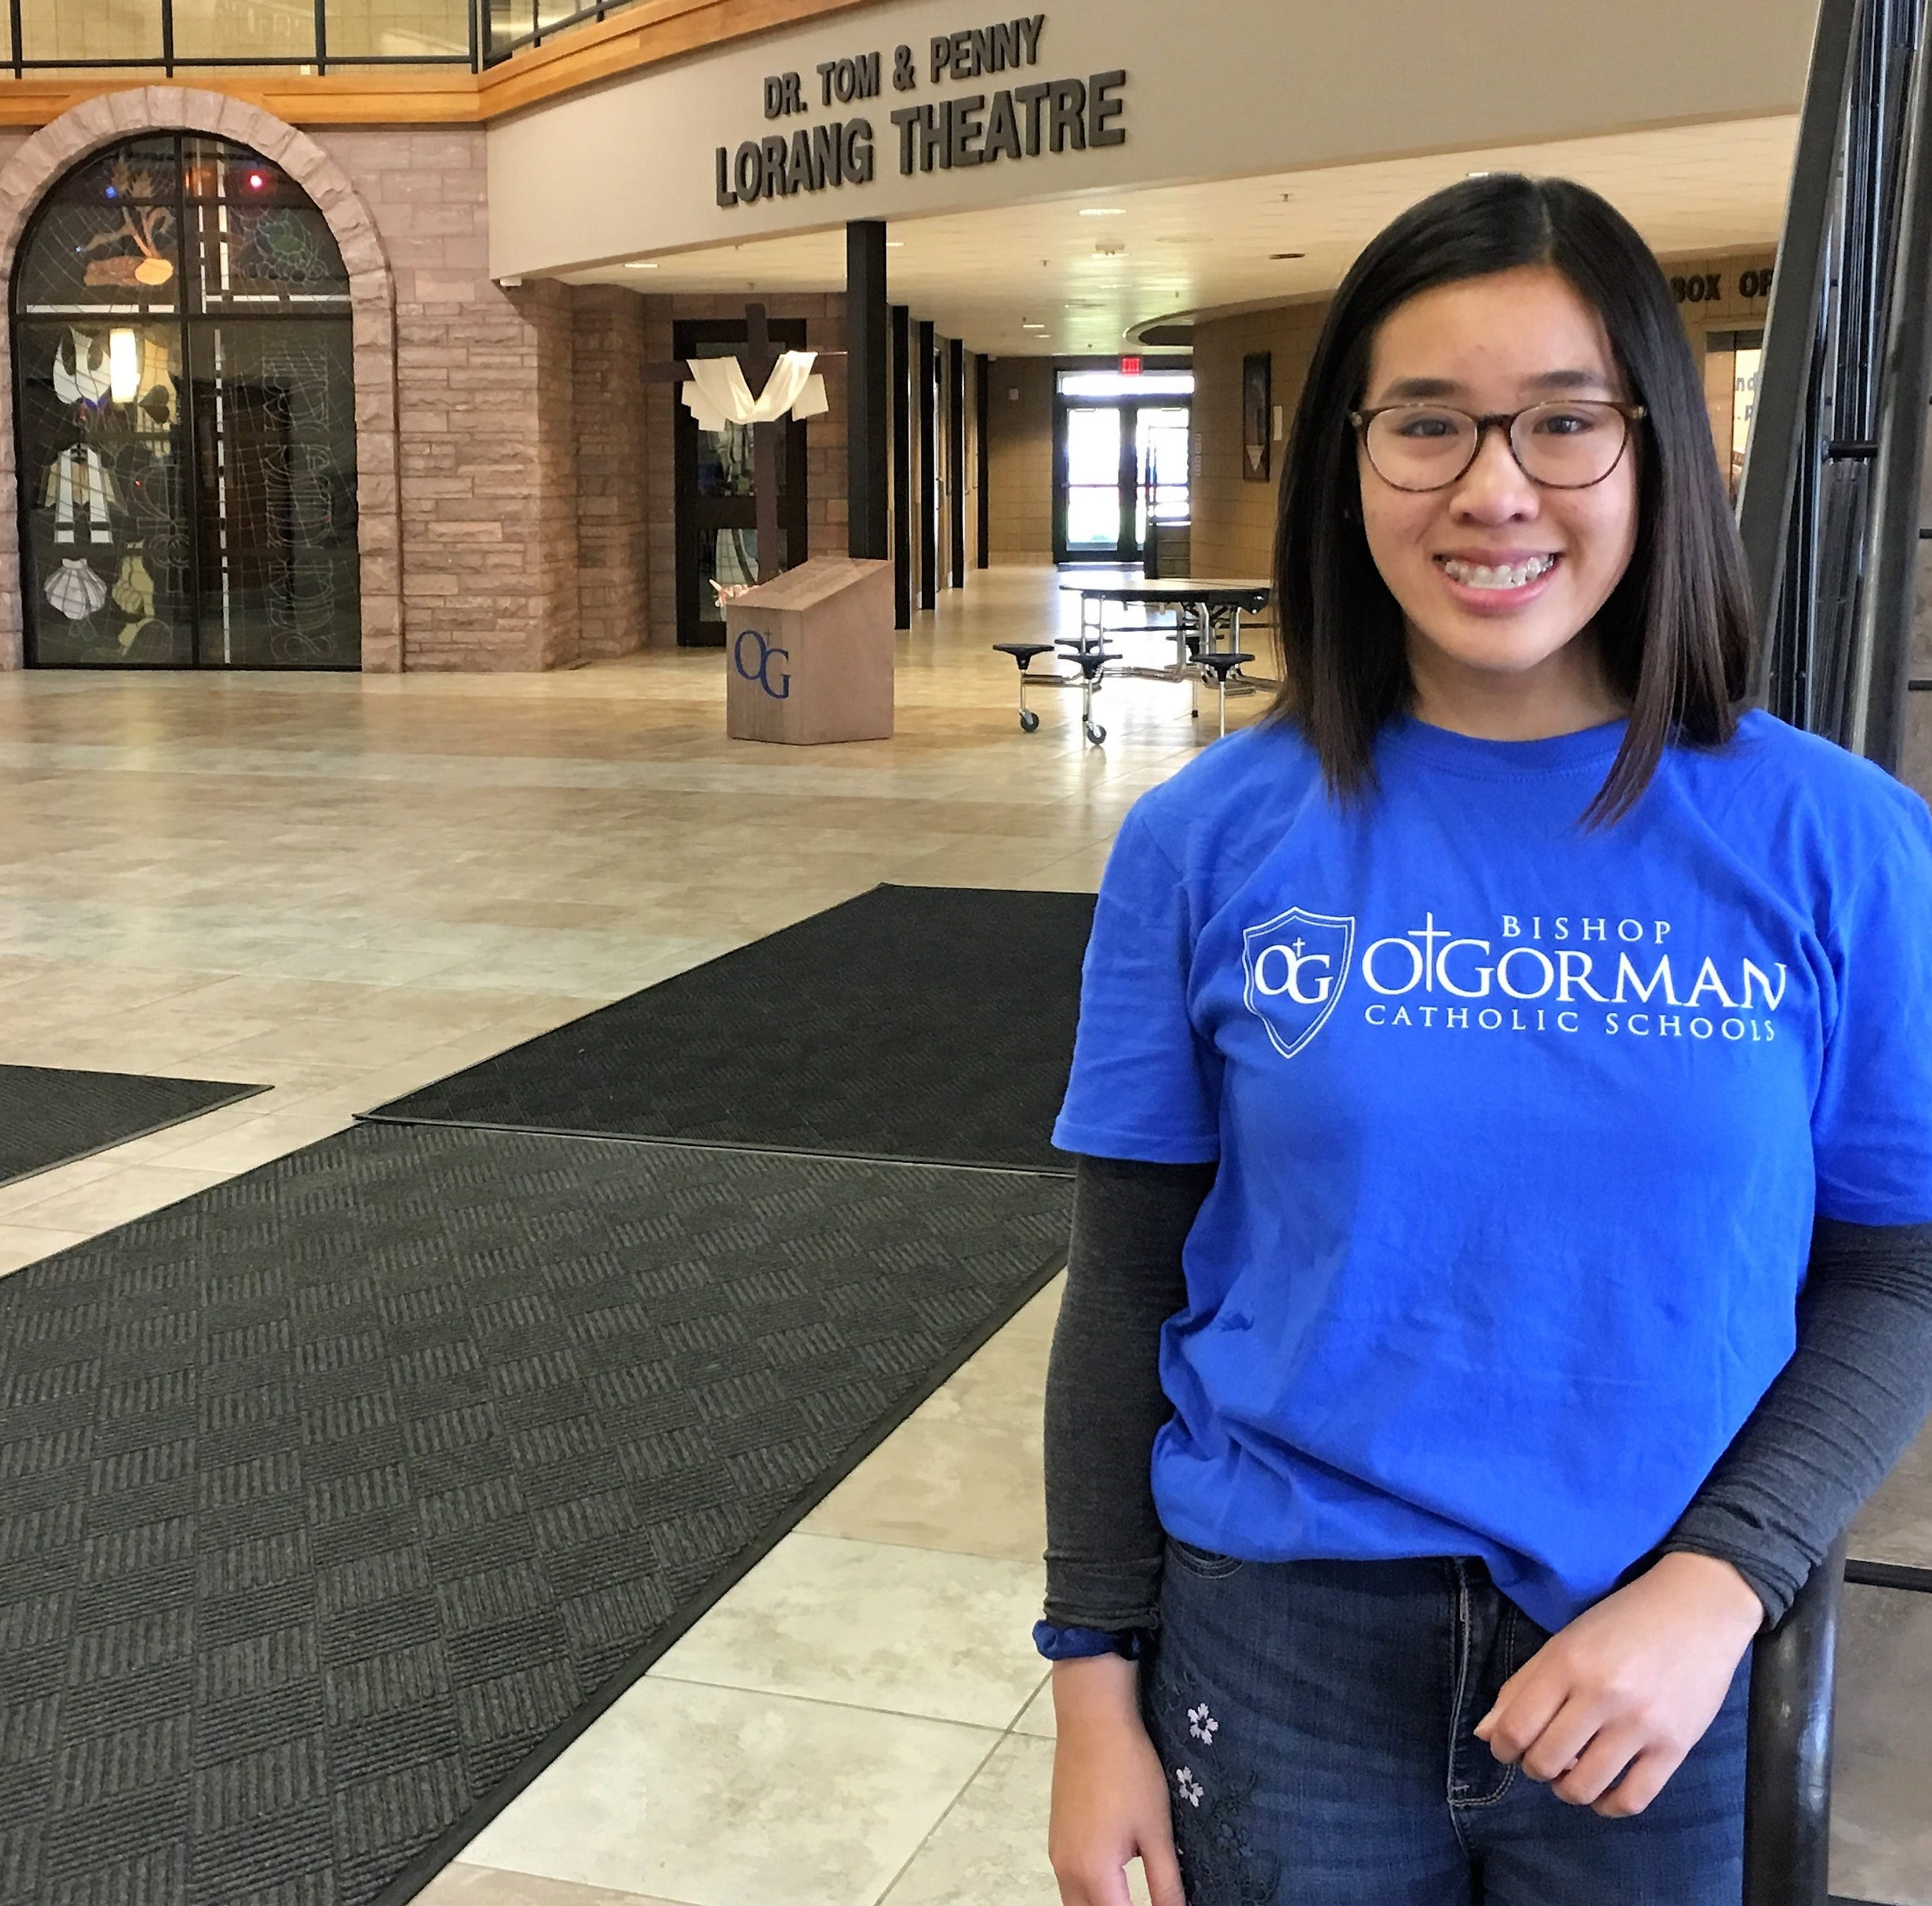 Two months after her mother's death, this O'Gorman student is med-school bound at 17